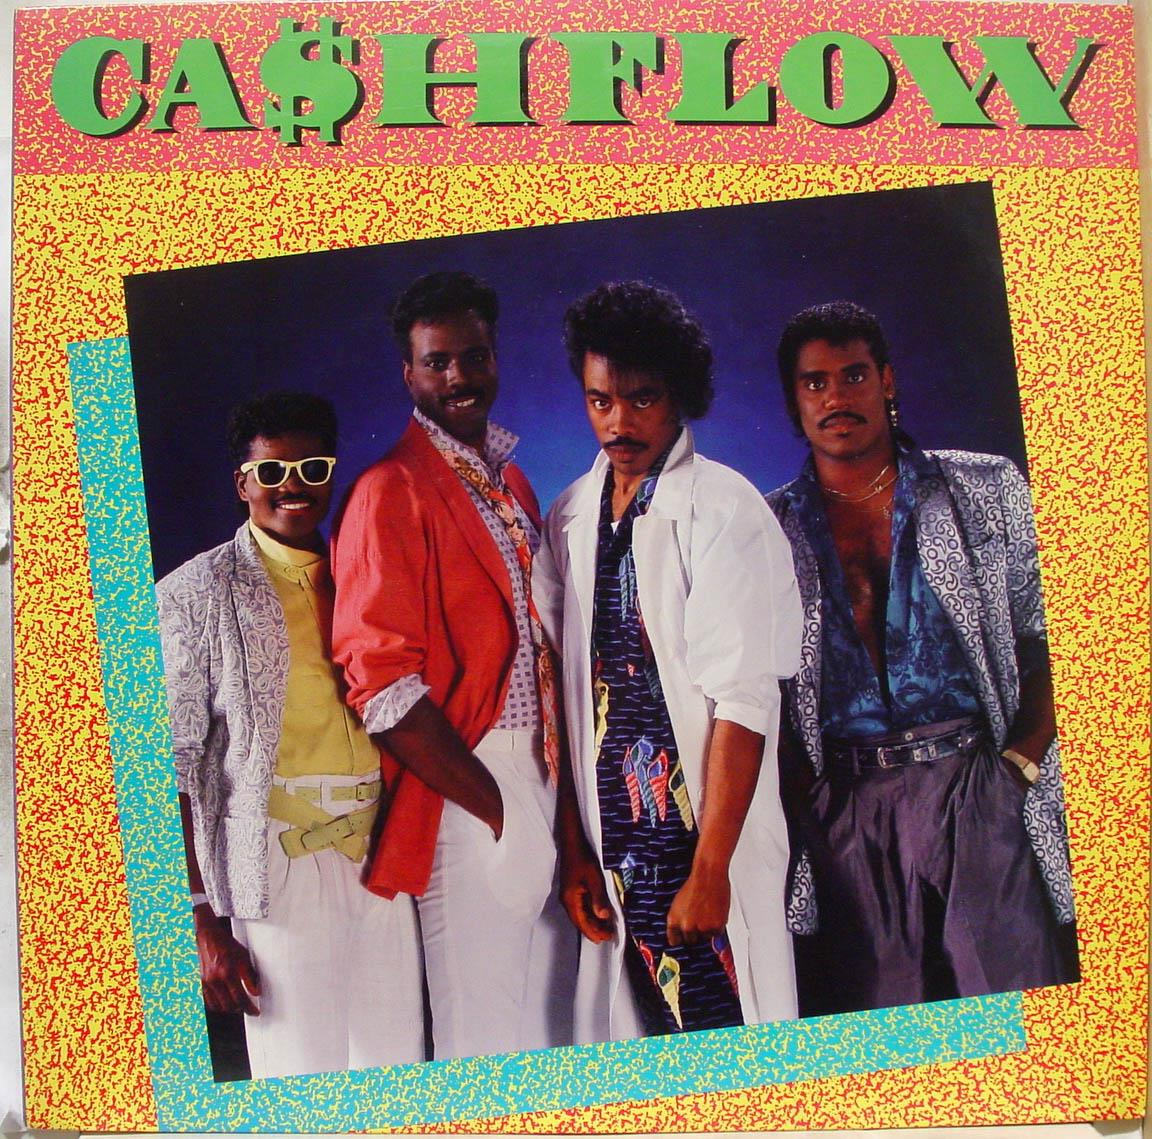 "CASHFLOW - Cashflow Mine All Mine 12"" Vg+ 884 722 1 Vinyl 1986 Record (mine All Mine)"